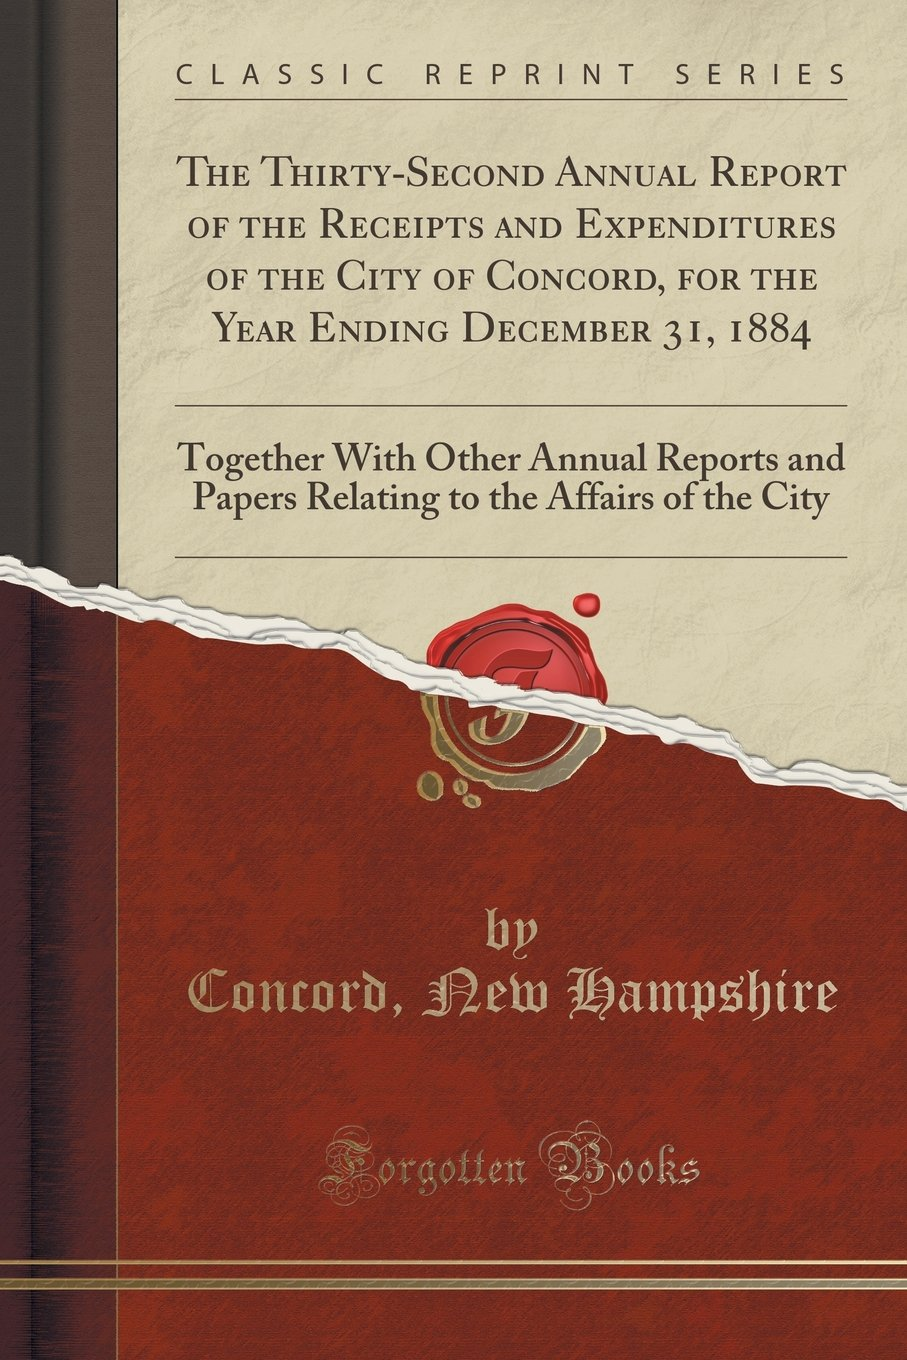 Download The Thirty-Second Annual Report of the Receipts and Expenditures of the City of Concord, for the Year Ending December 31, 1884: Together With Other ... to the Affairs of the City (Classic Reprint) pdf